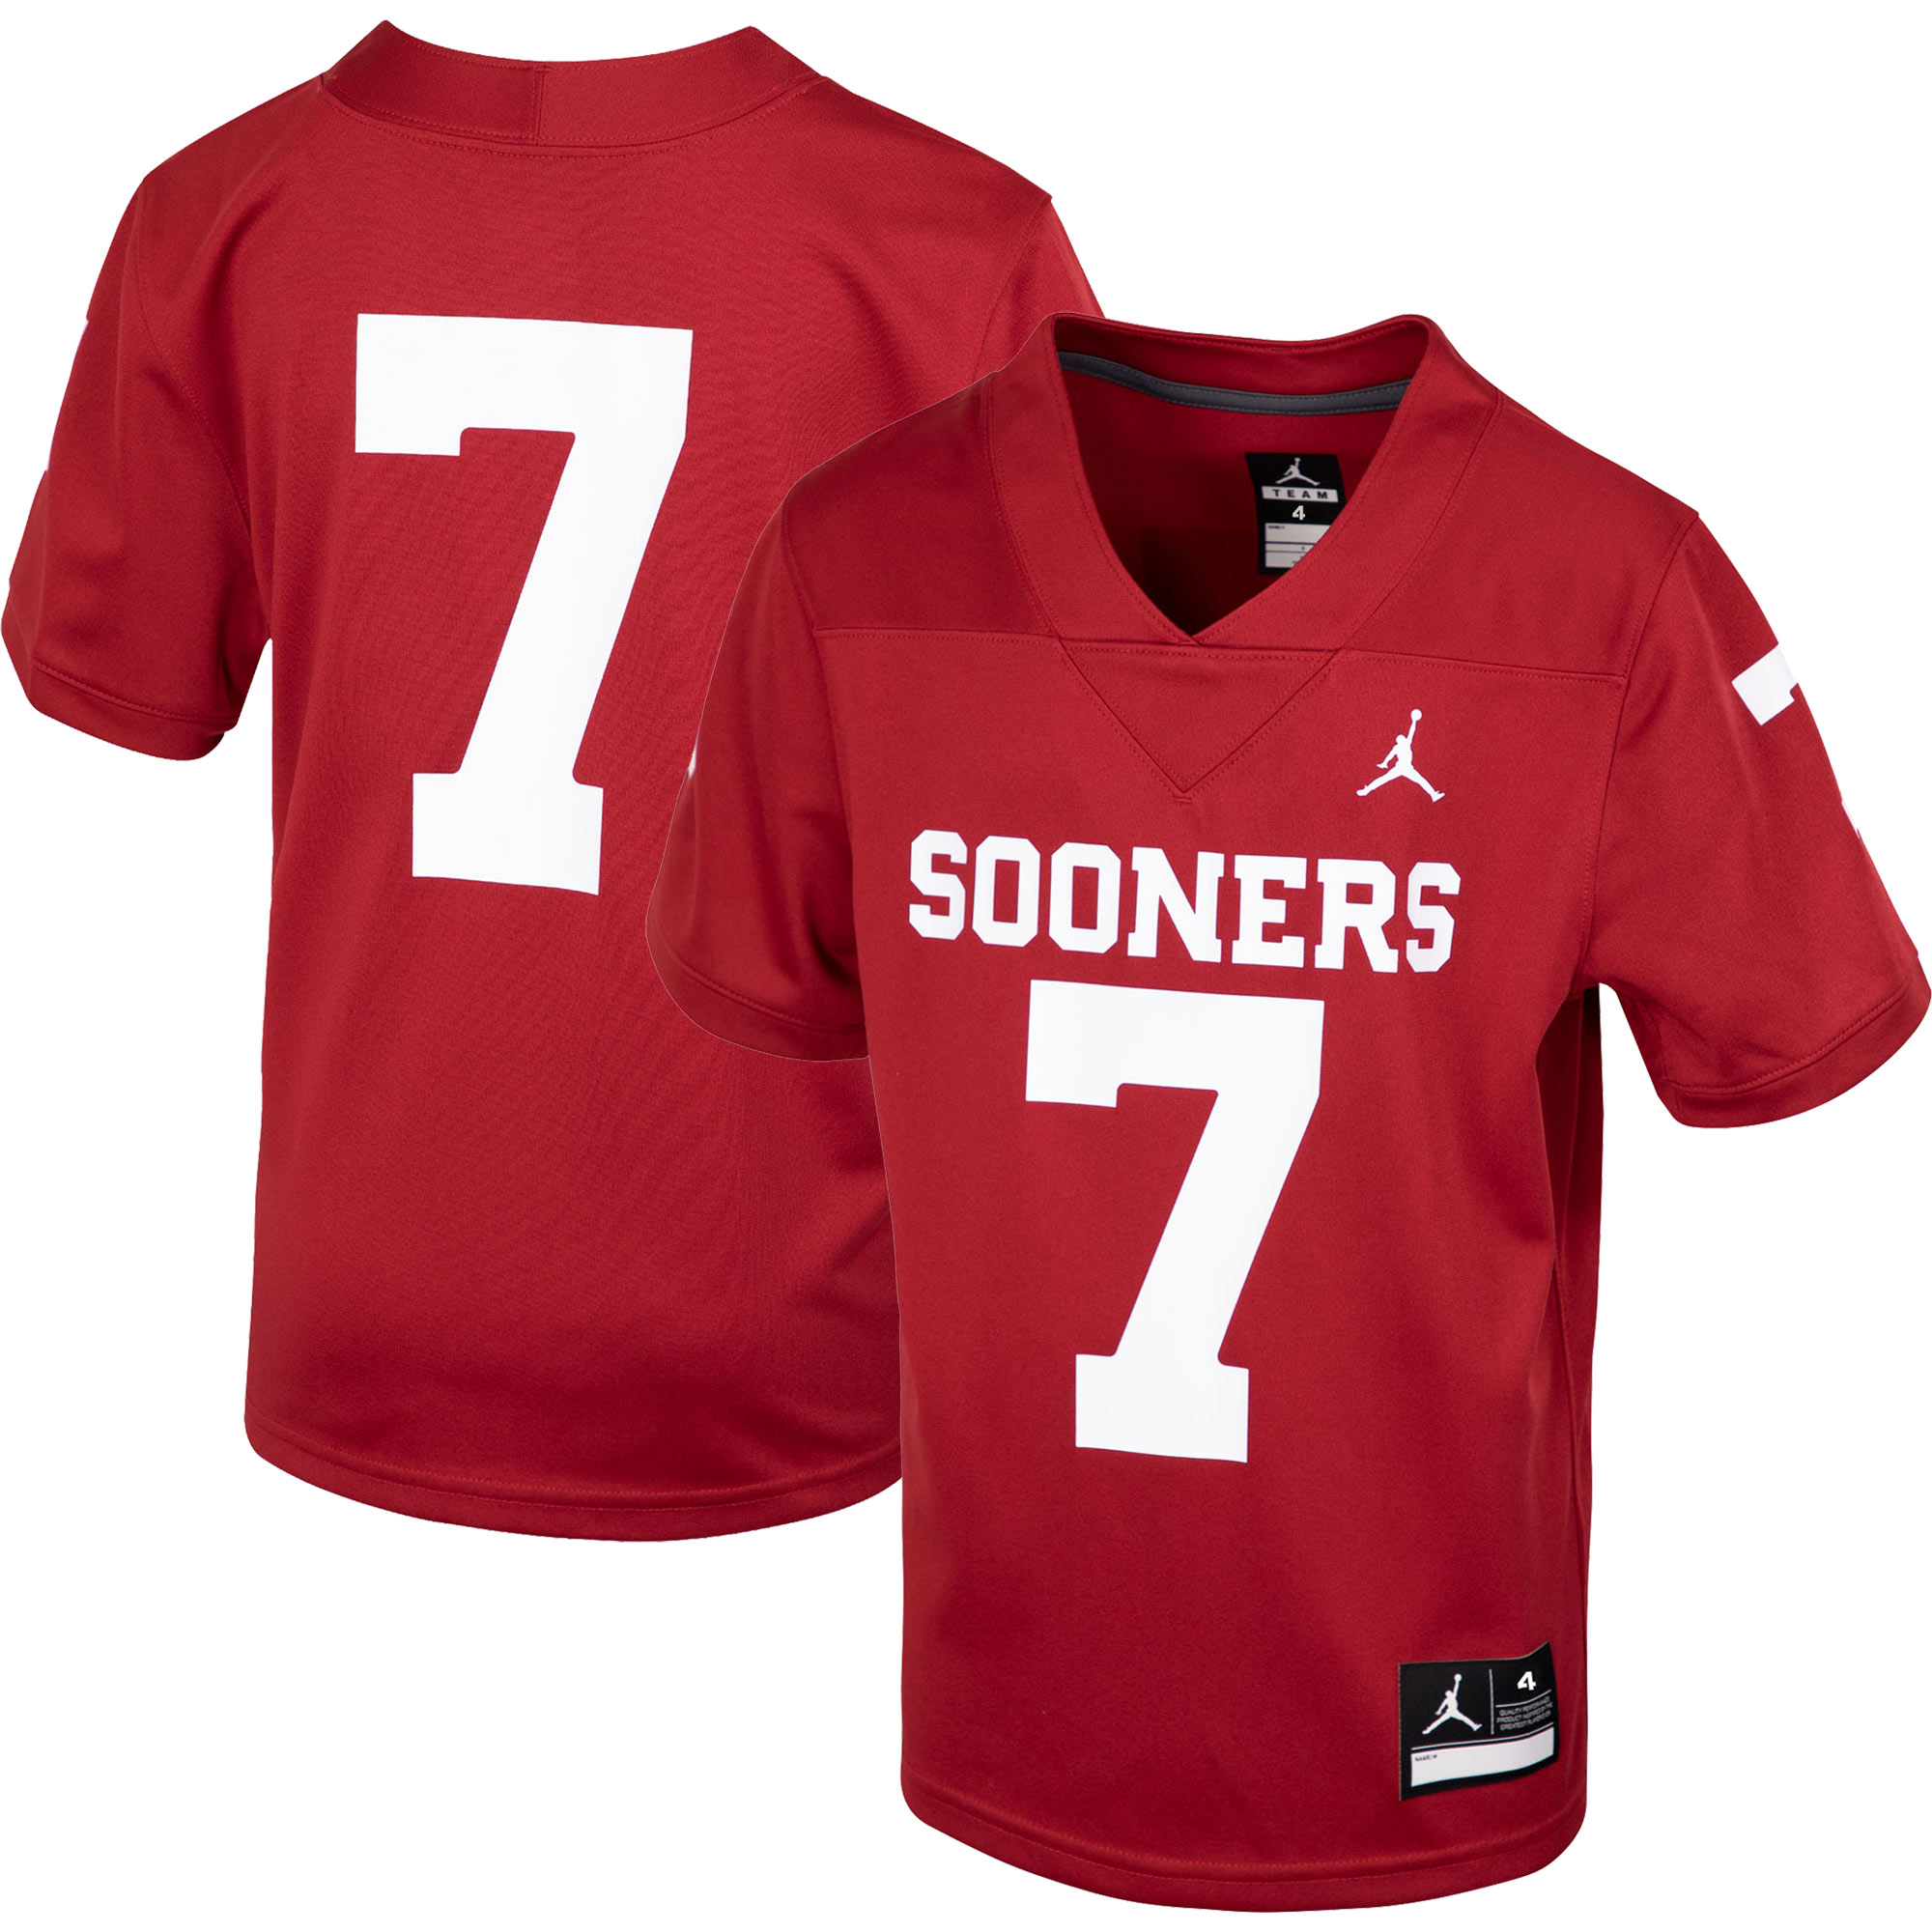 #7 Oklahoma Sooners Jordan Brand Preschool Replica Football Jersey - Crimson